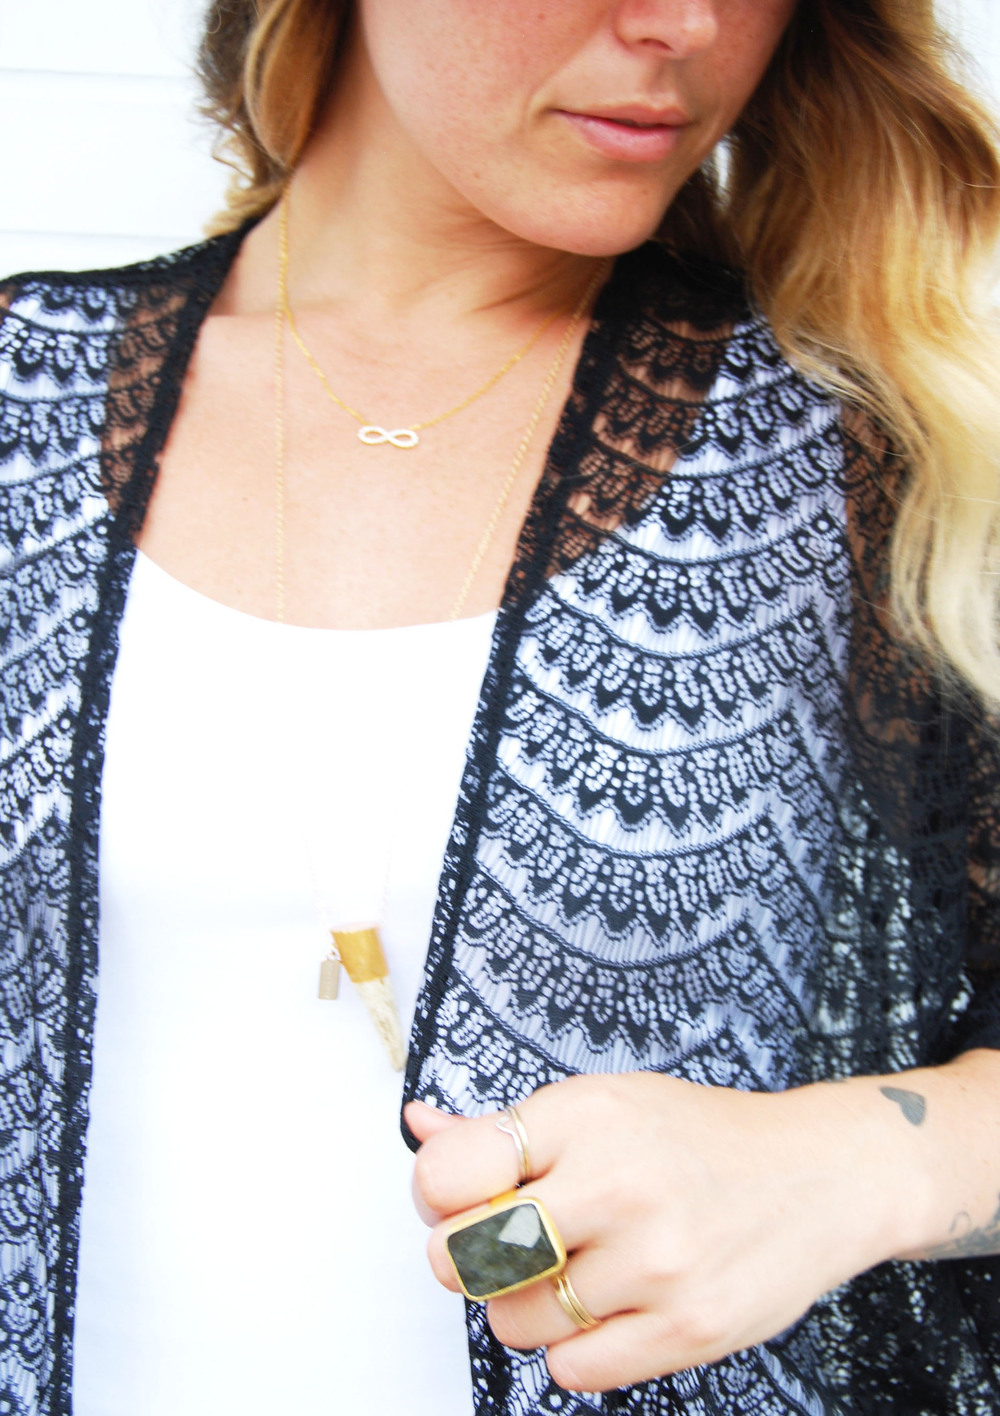 KISA Infinity necklace in gold $48 // Tess + Tricia gold capped antler $28 // Turkish statement ring $24